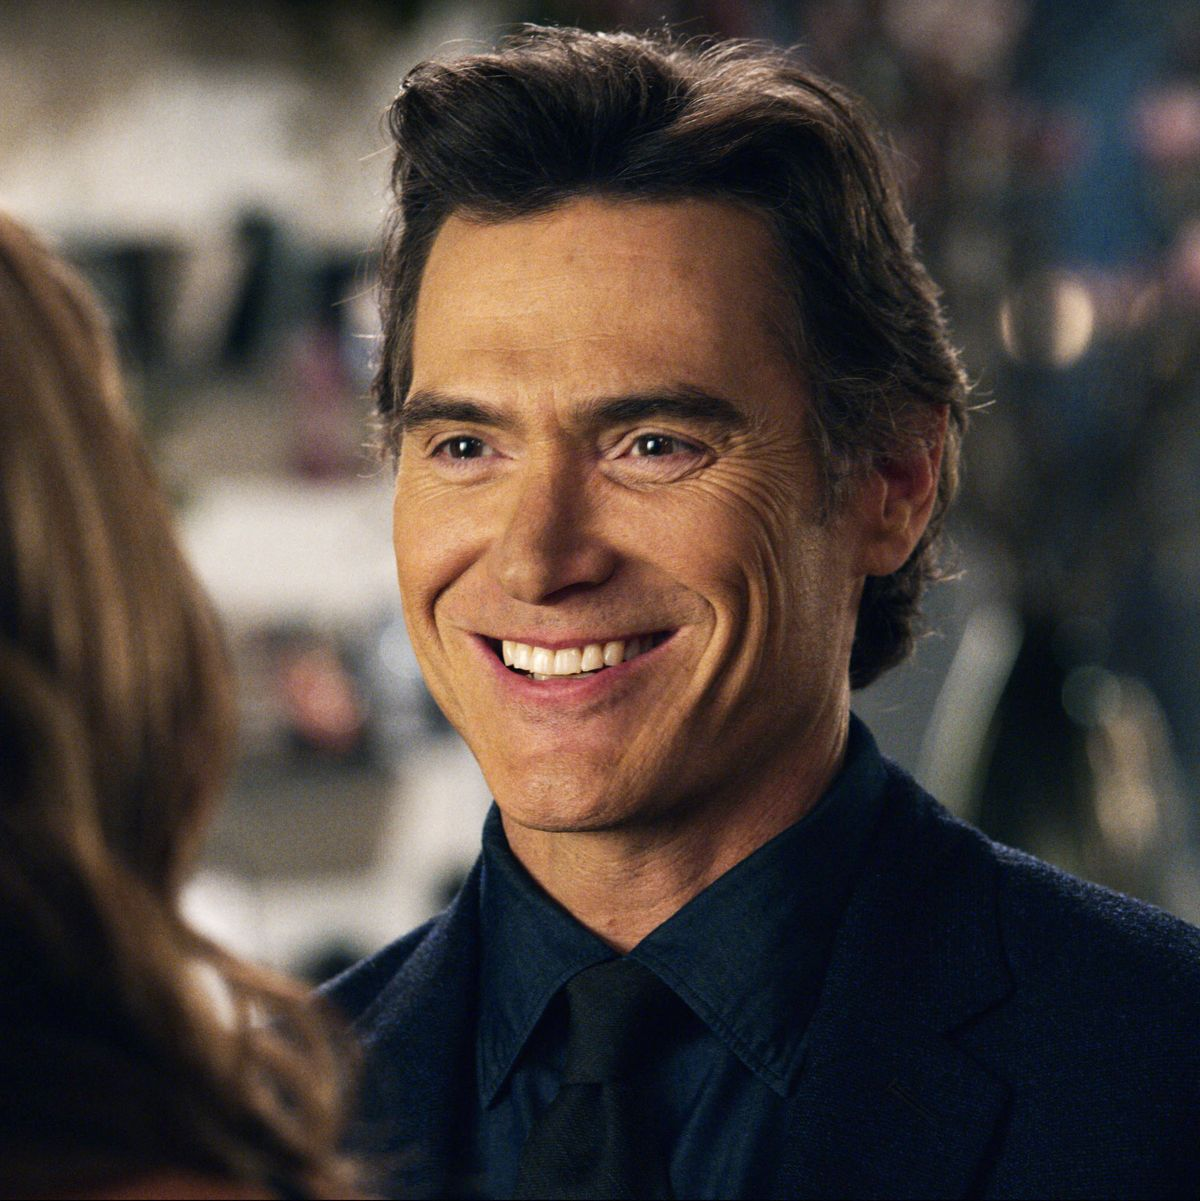 Billy Crudup The morning show